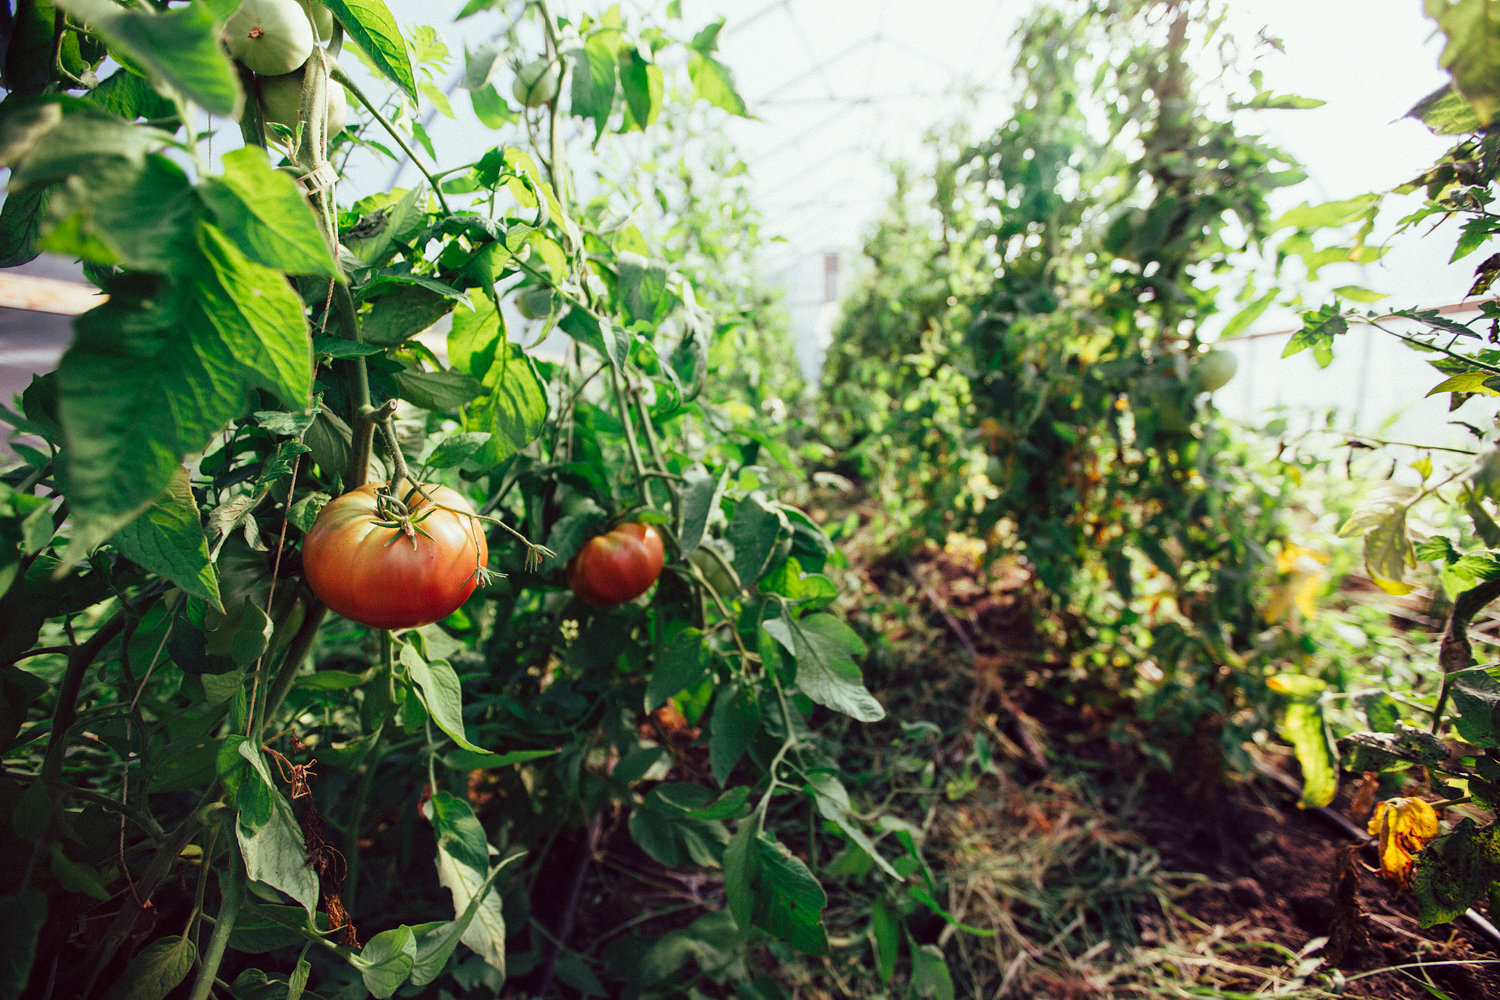 Heirlooms waiting to be picked.